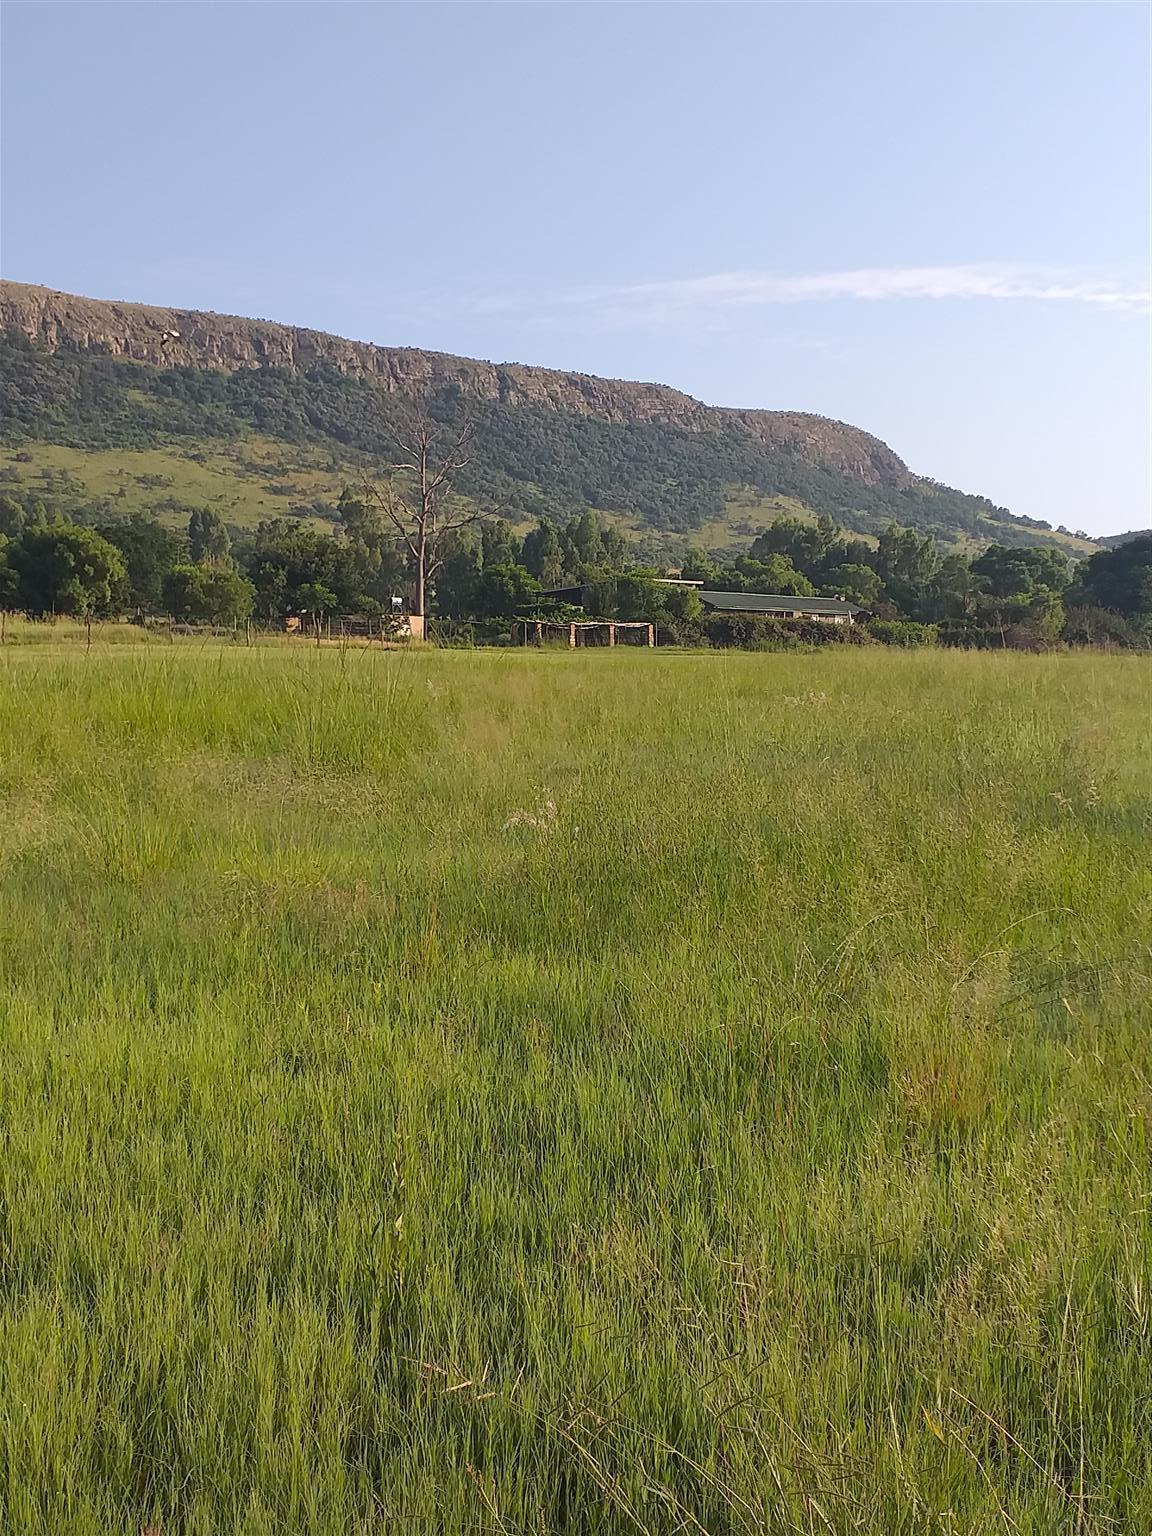 Independence- self sufficient - Kameeldrift west - 9.8hect plot